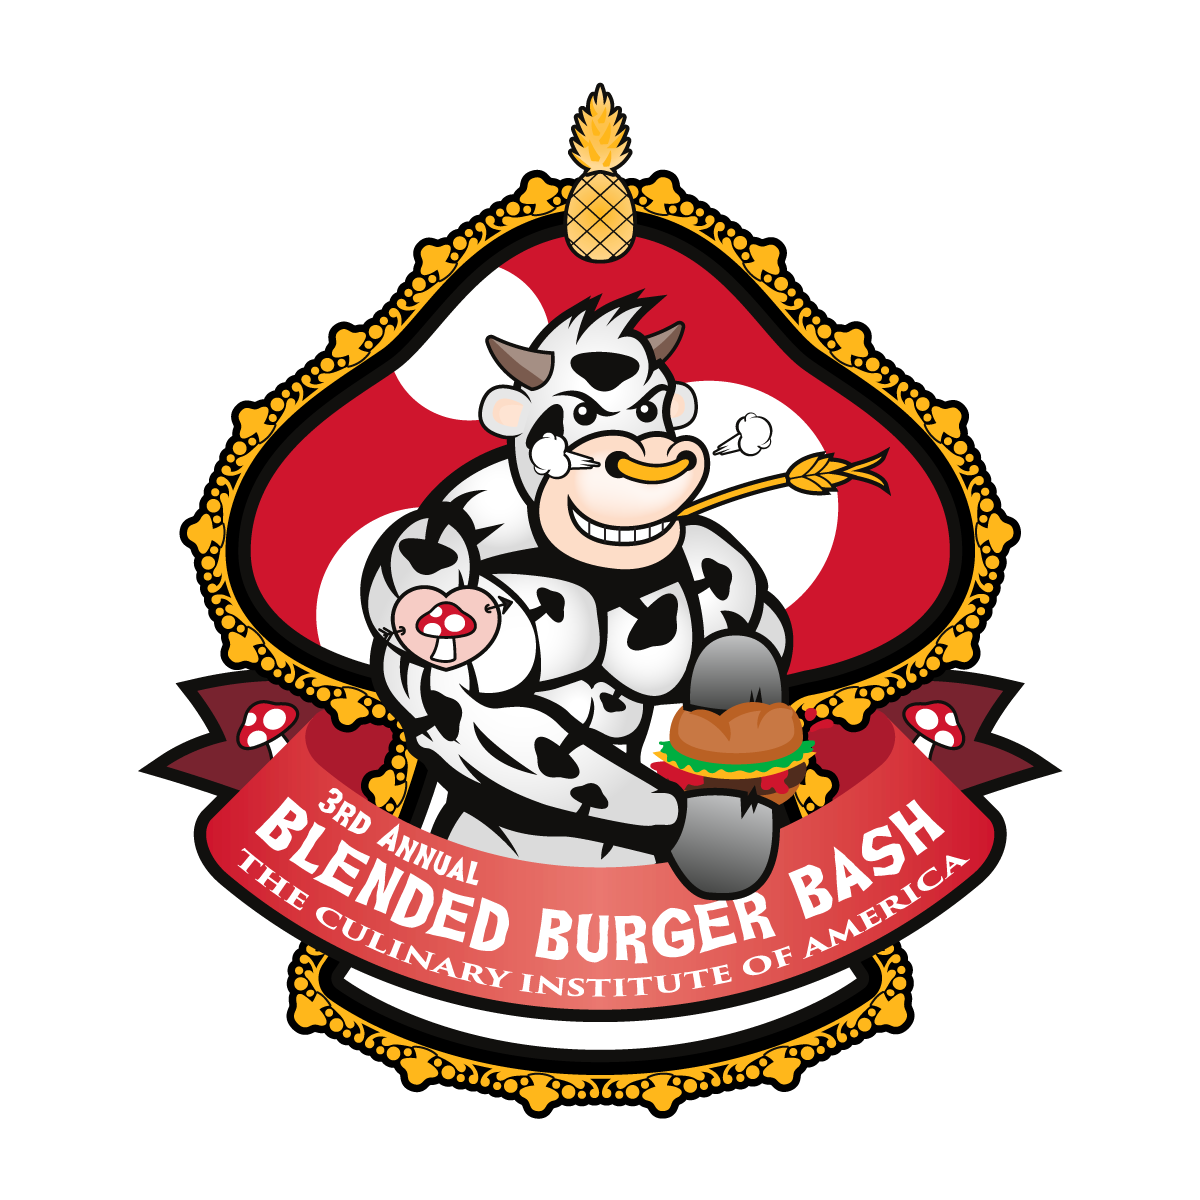 Blended-Burger-Bash.png